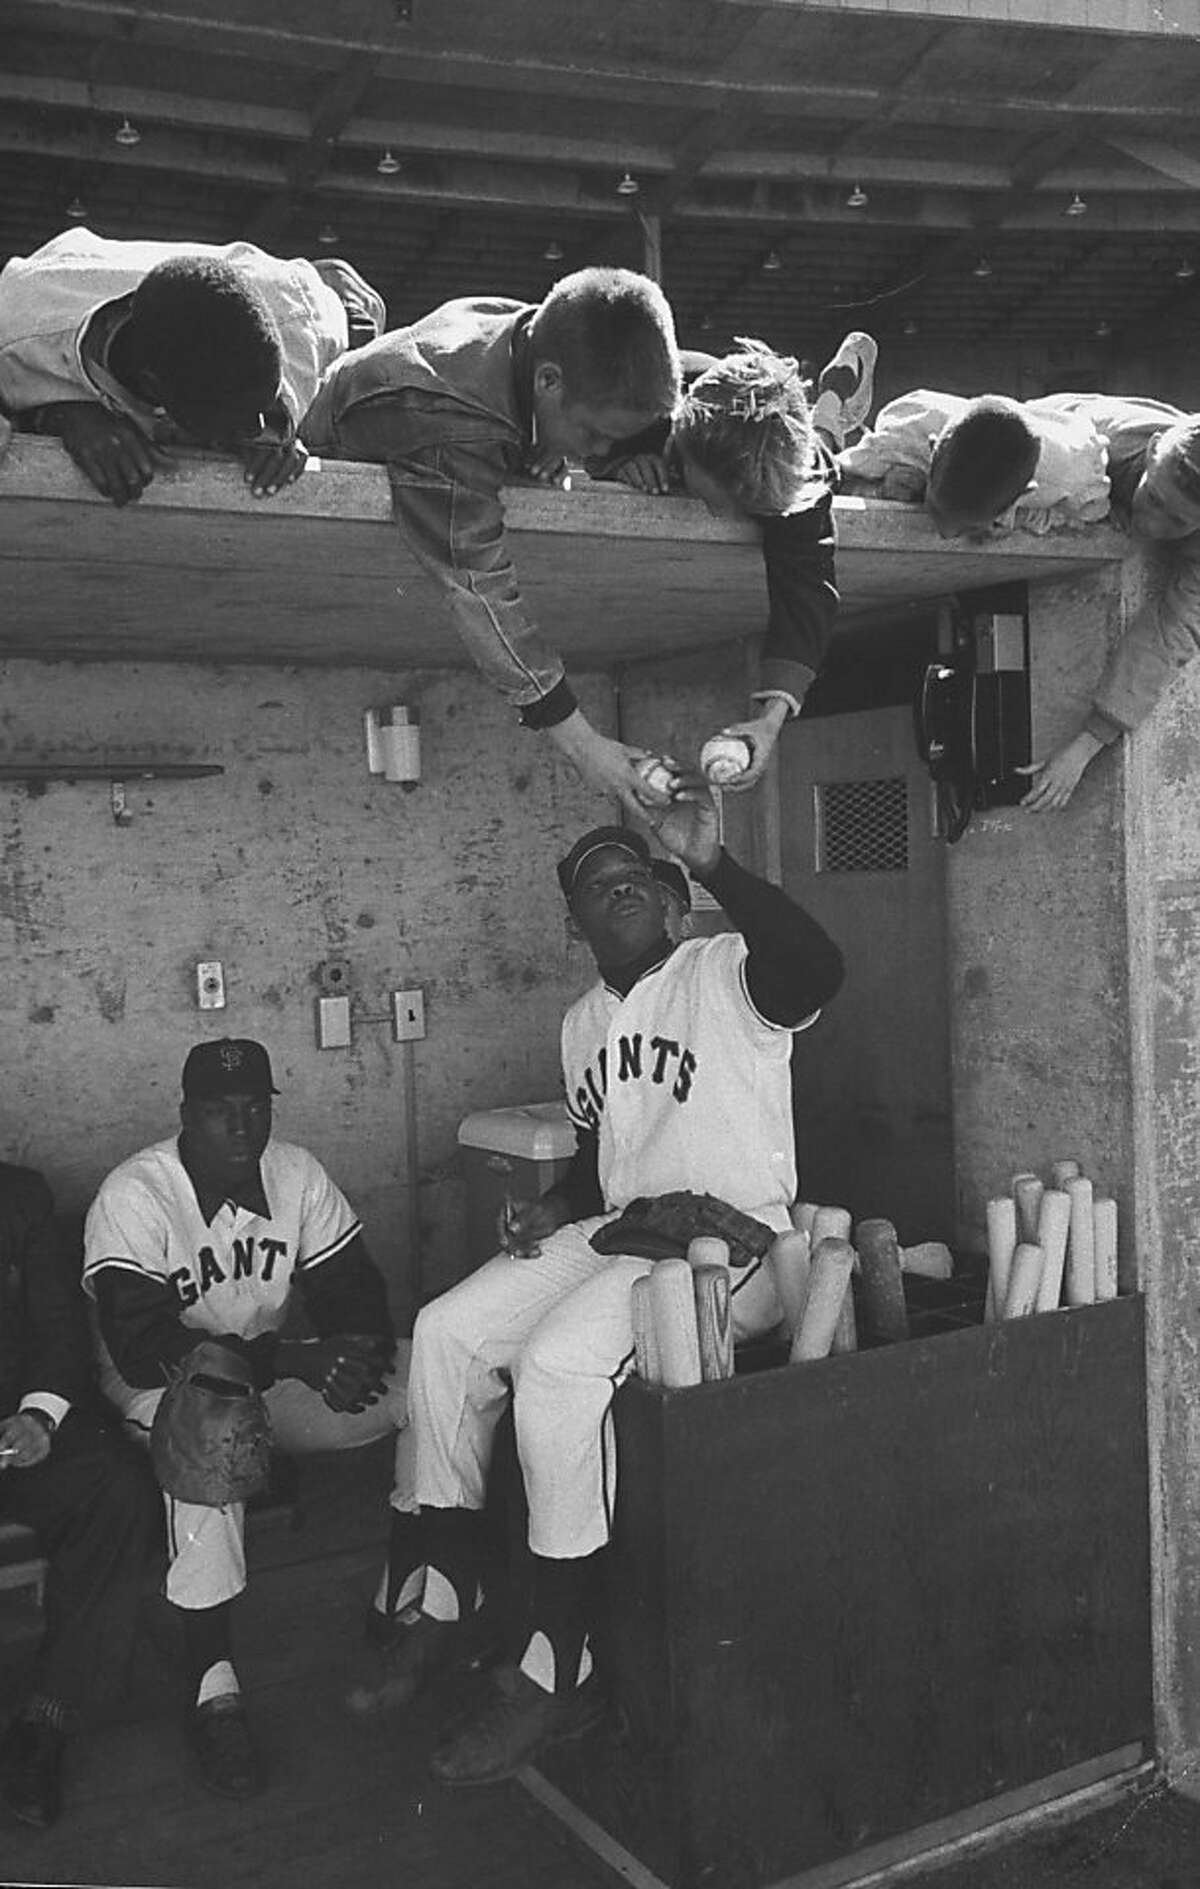 Willie Mays and Willie McCovey sign autographs in dugout of then-new Candlestick in 1960.